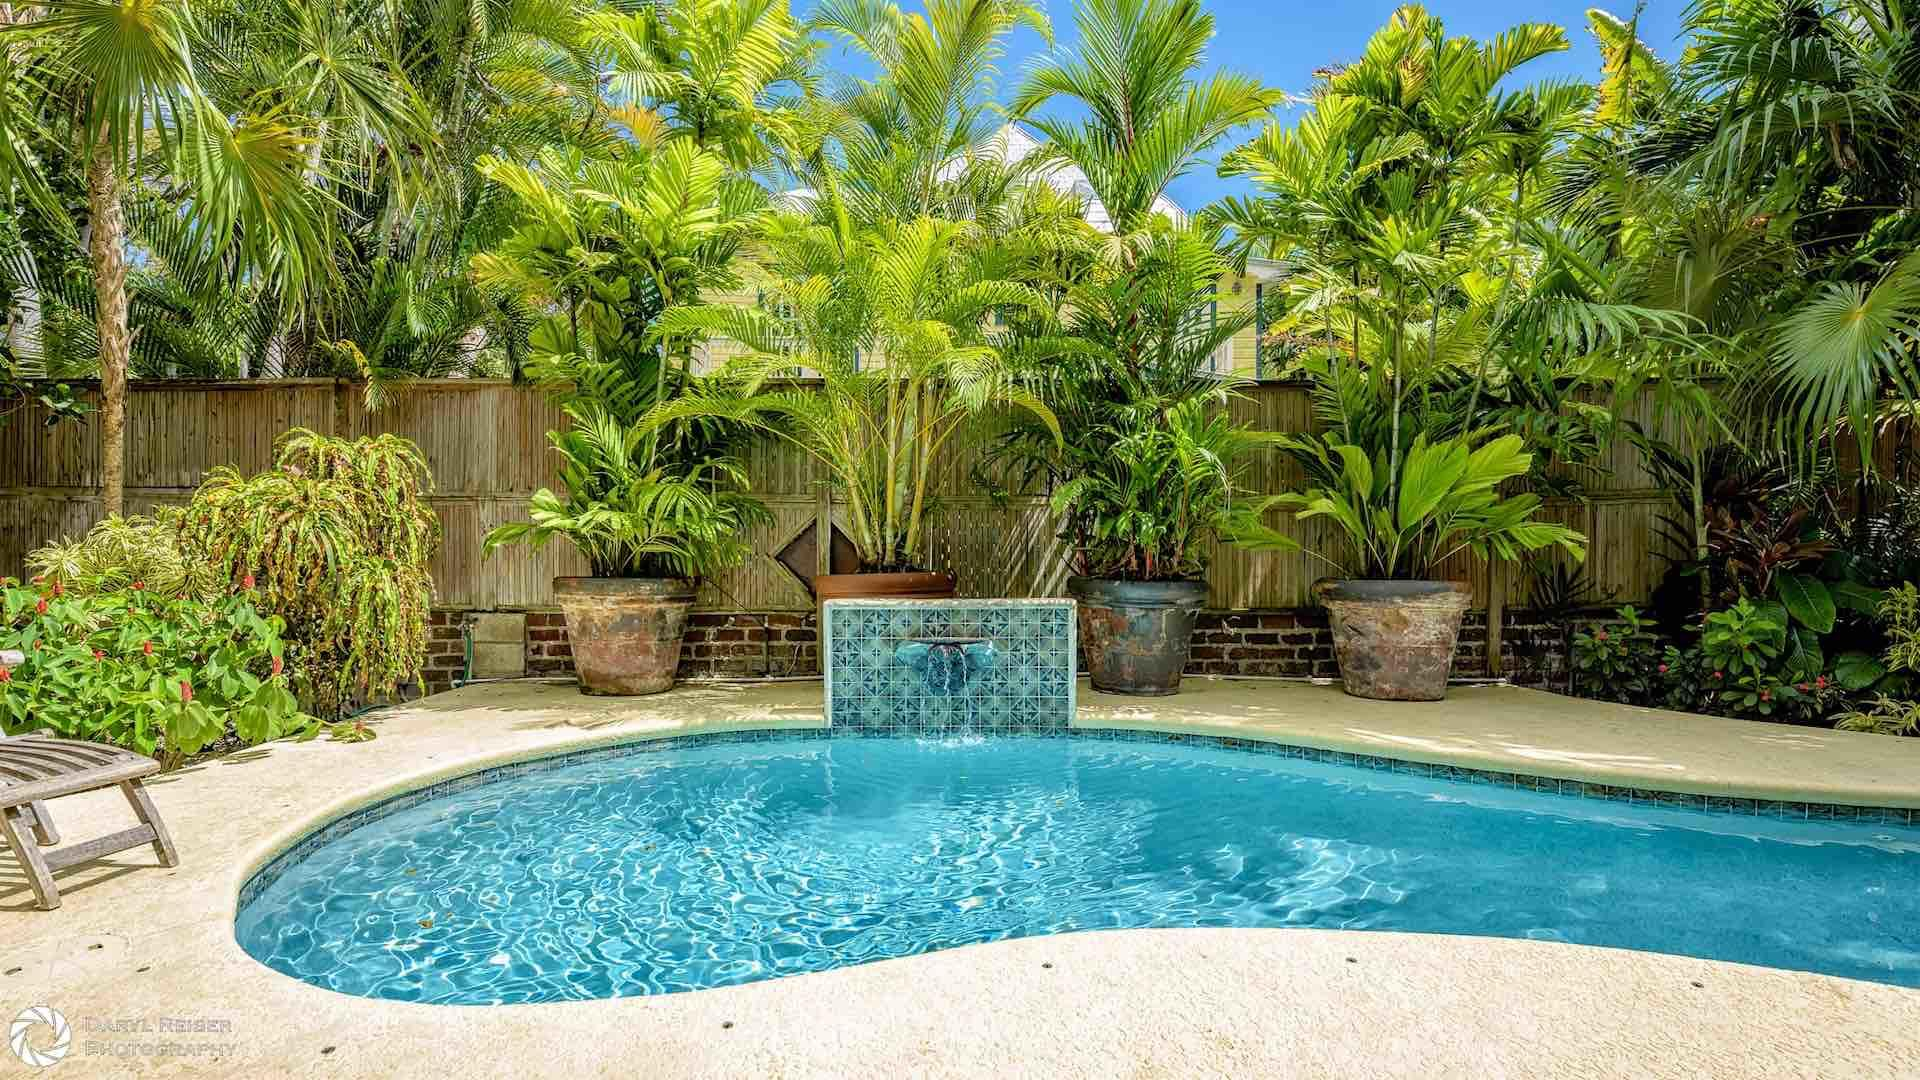 The private heated pool is surrounded by lush greenery...